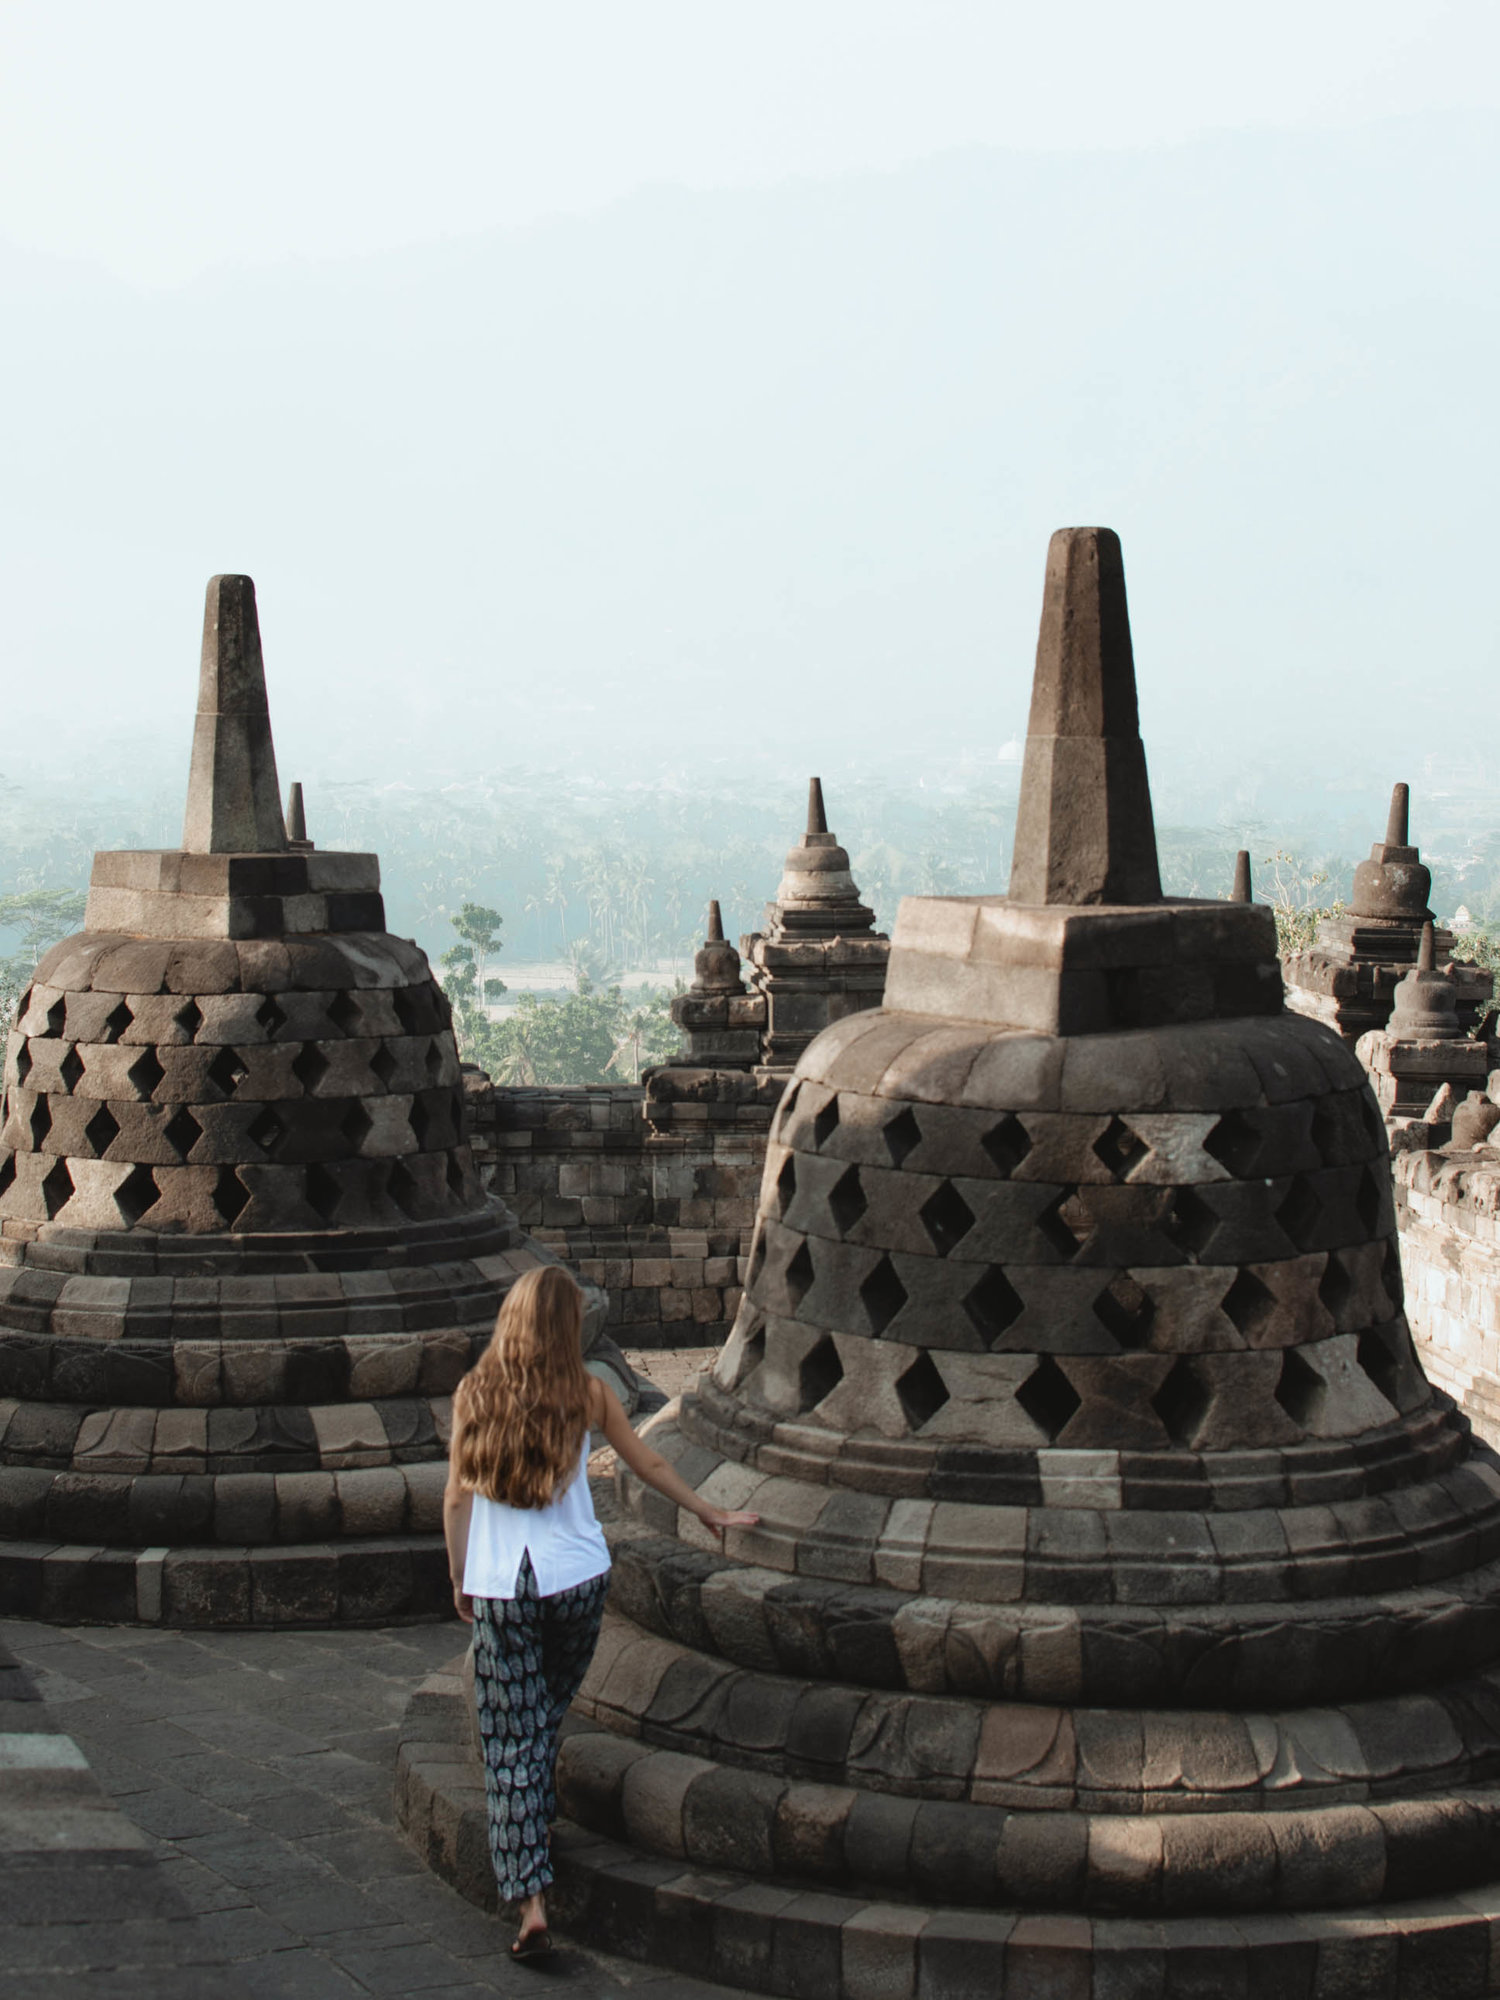 In September, 2018 I visited Borobudur in Indonesia